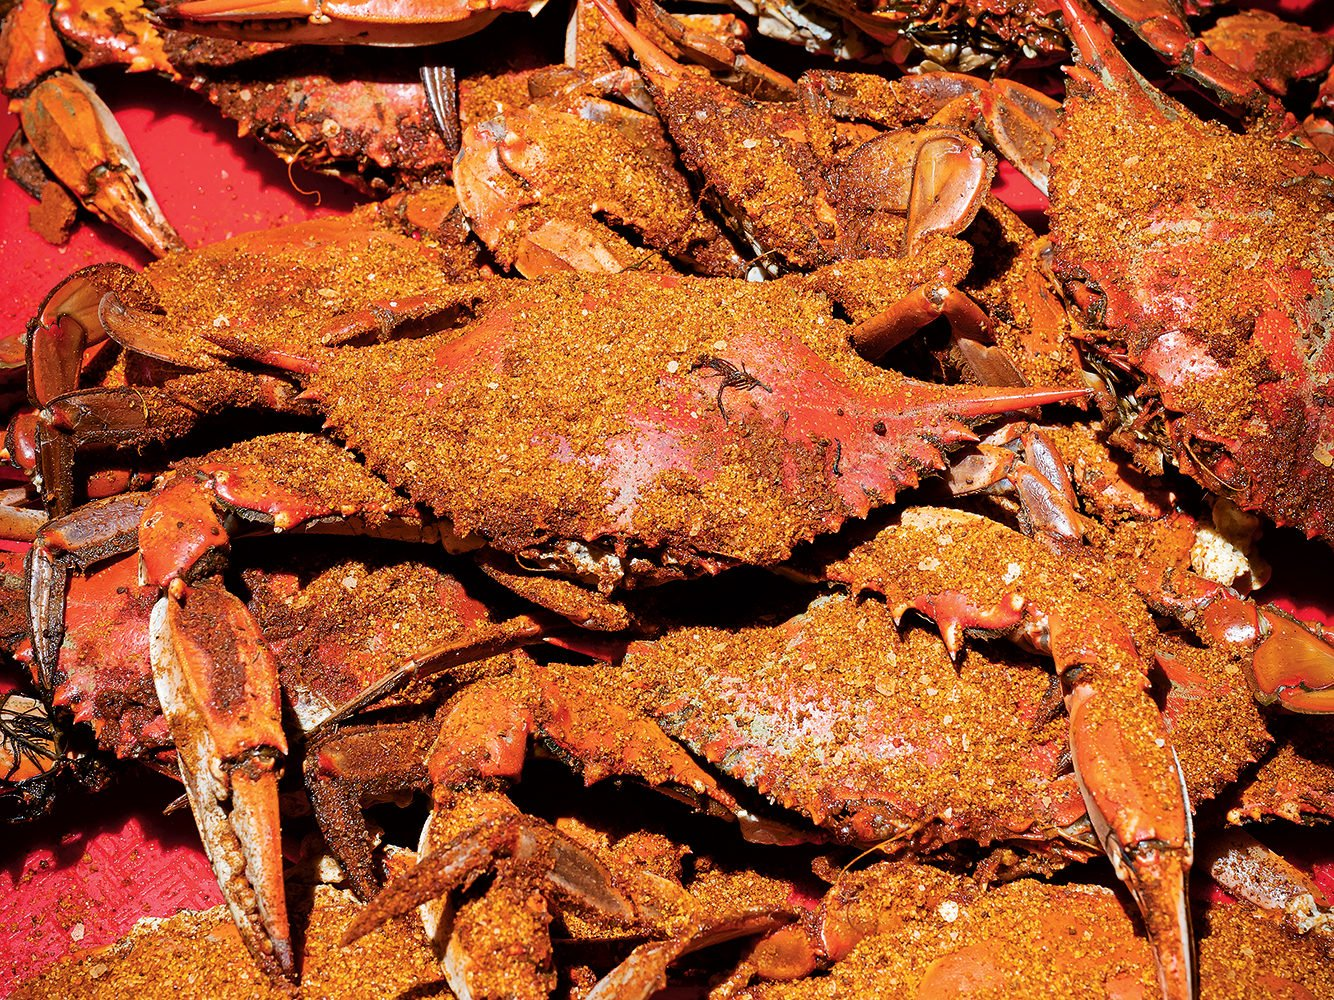 Crabs at the Point. Photograph by Scott Suchman.